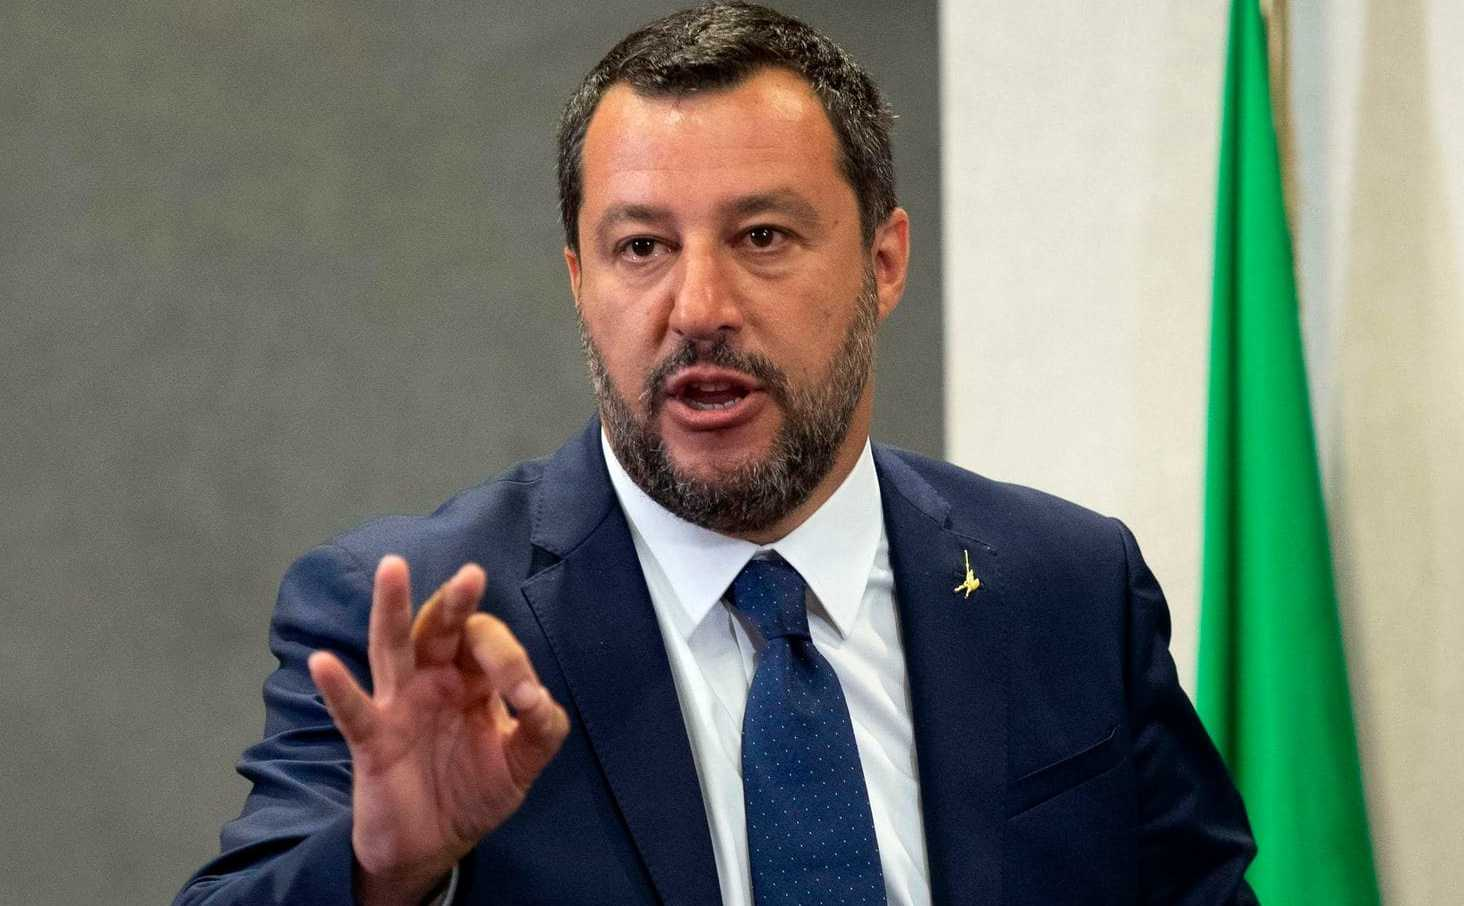 Matteo Salvini Career